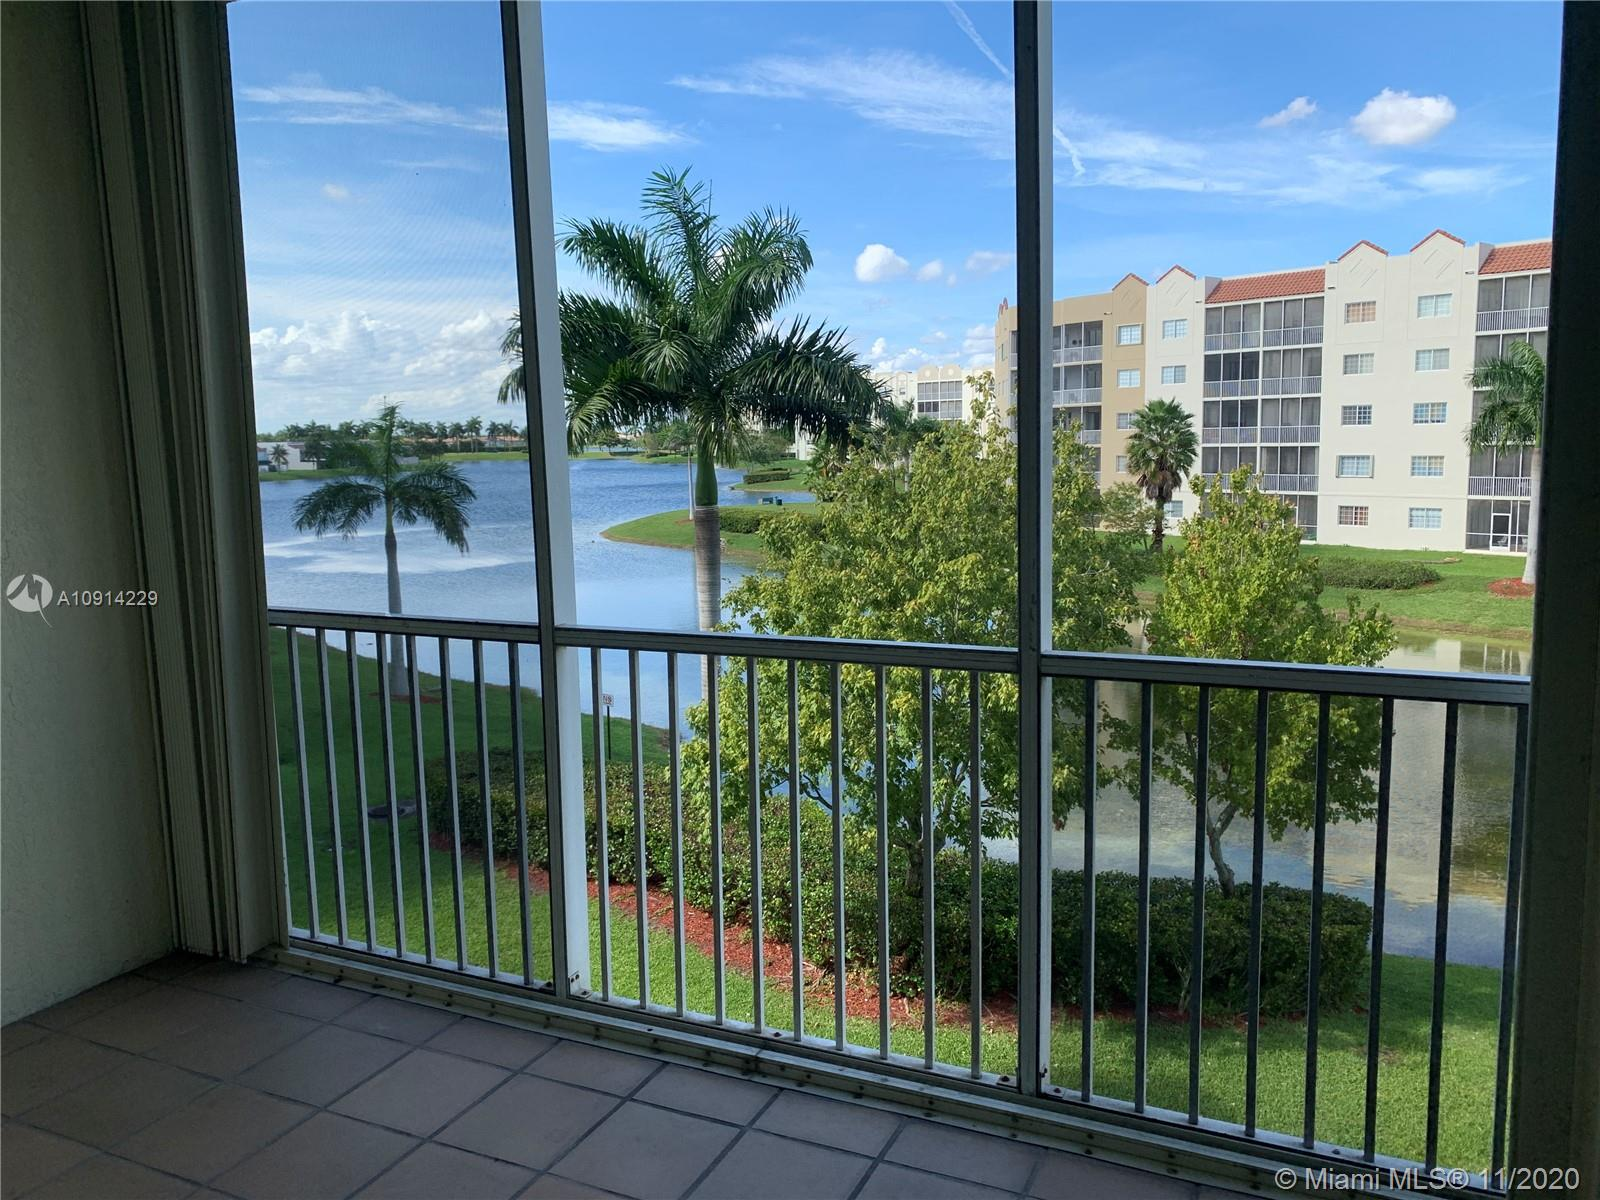 10710 NW 66th St #303 For Sale A10914229, FL